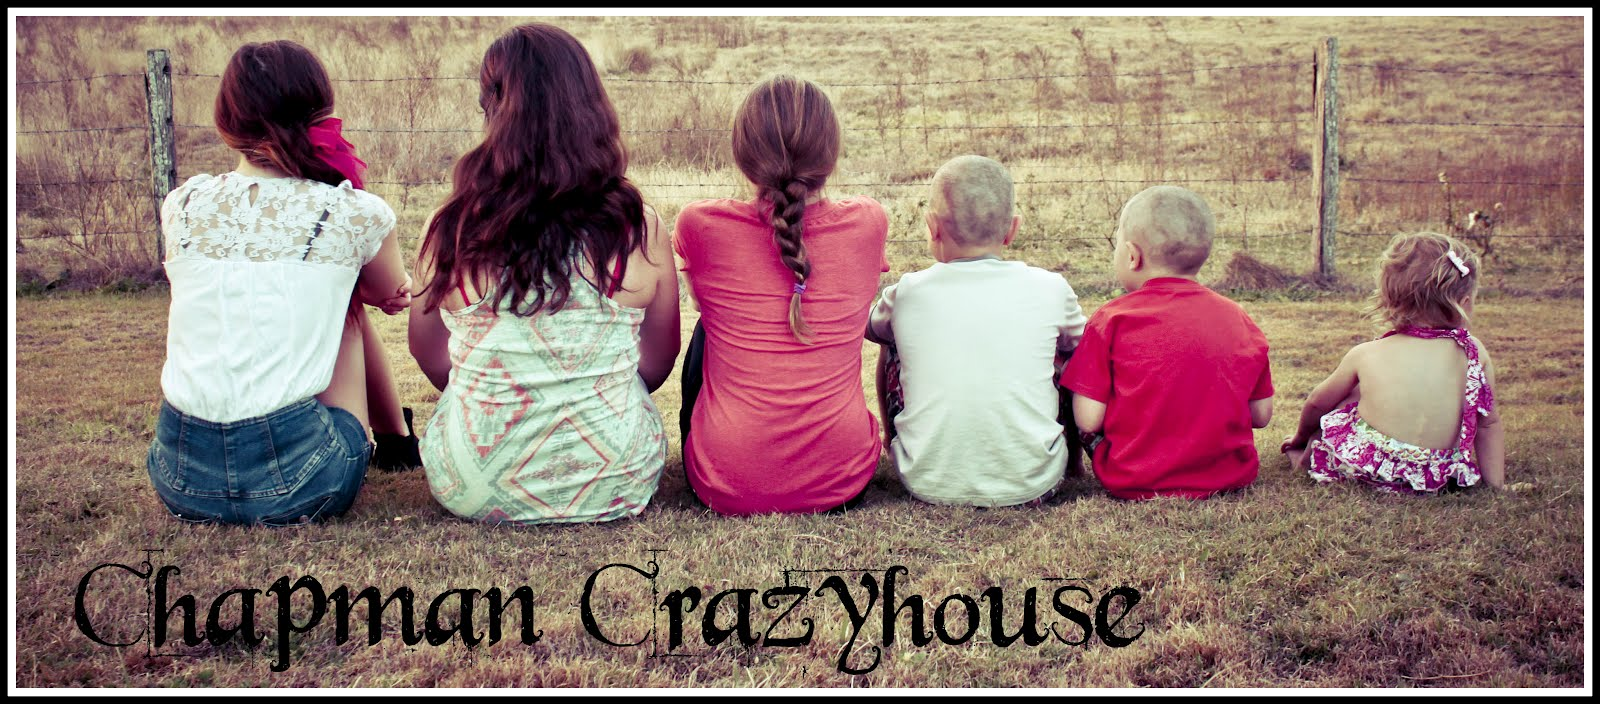 Chapman Crazyhouse